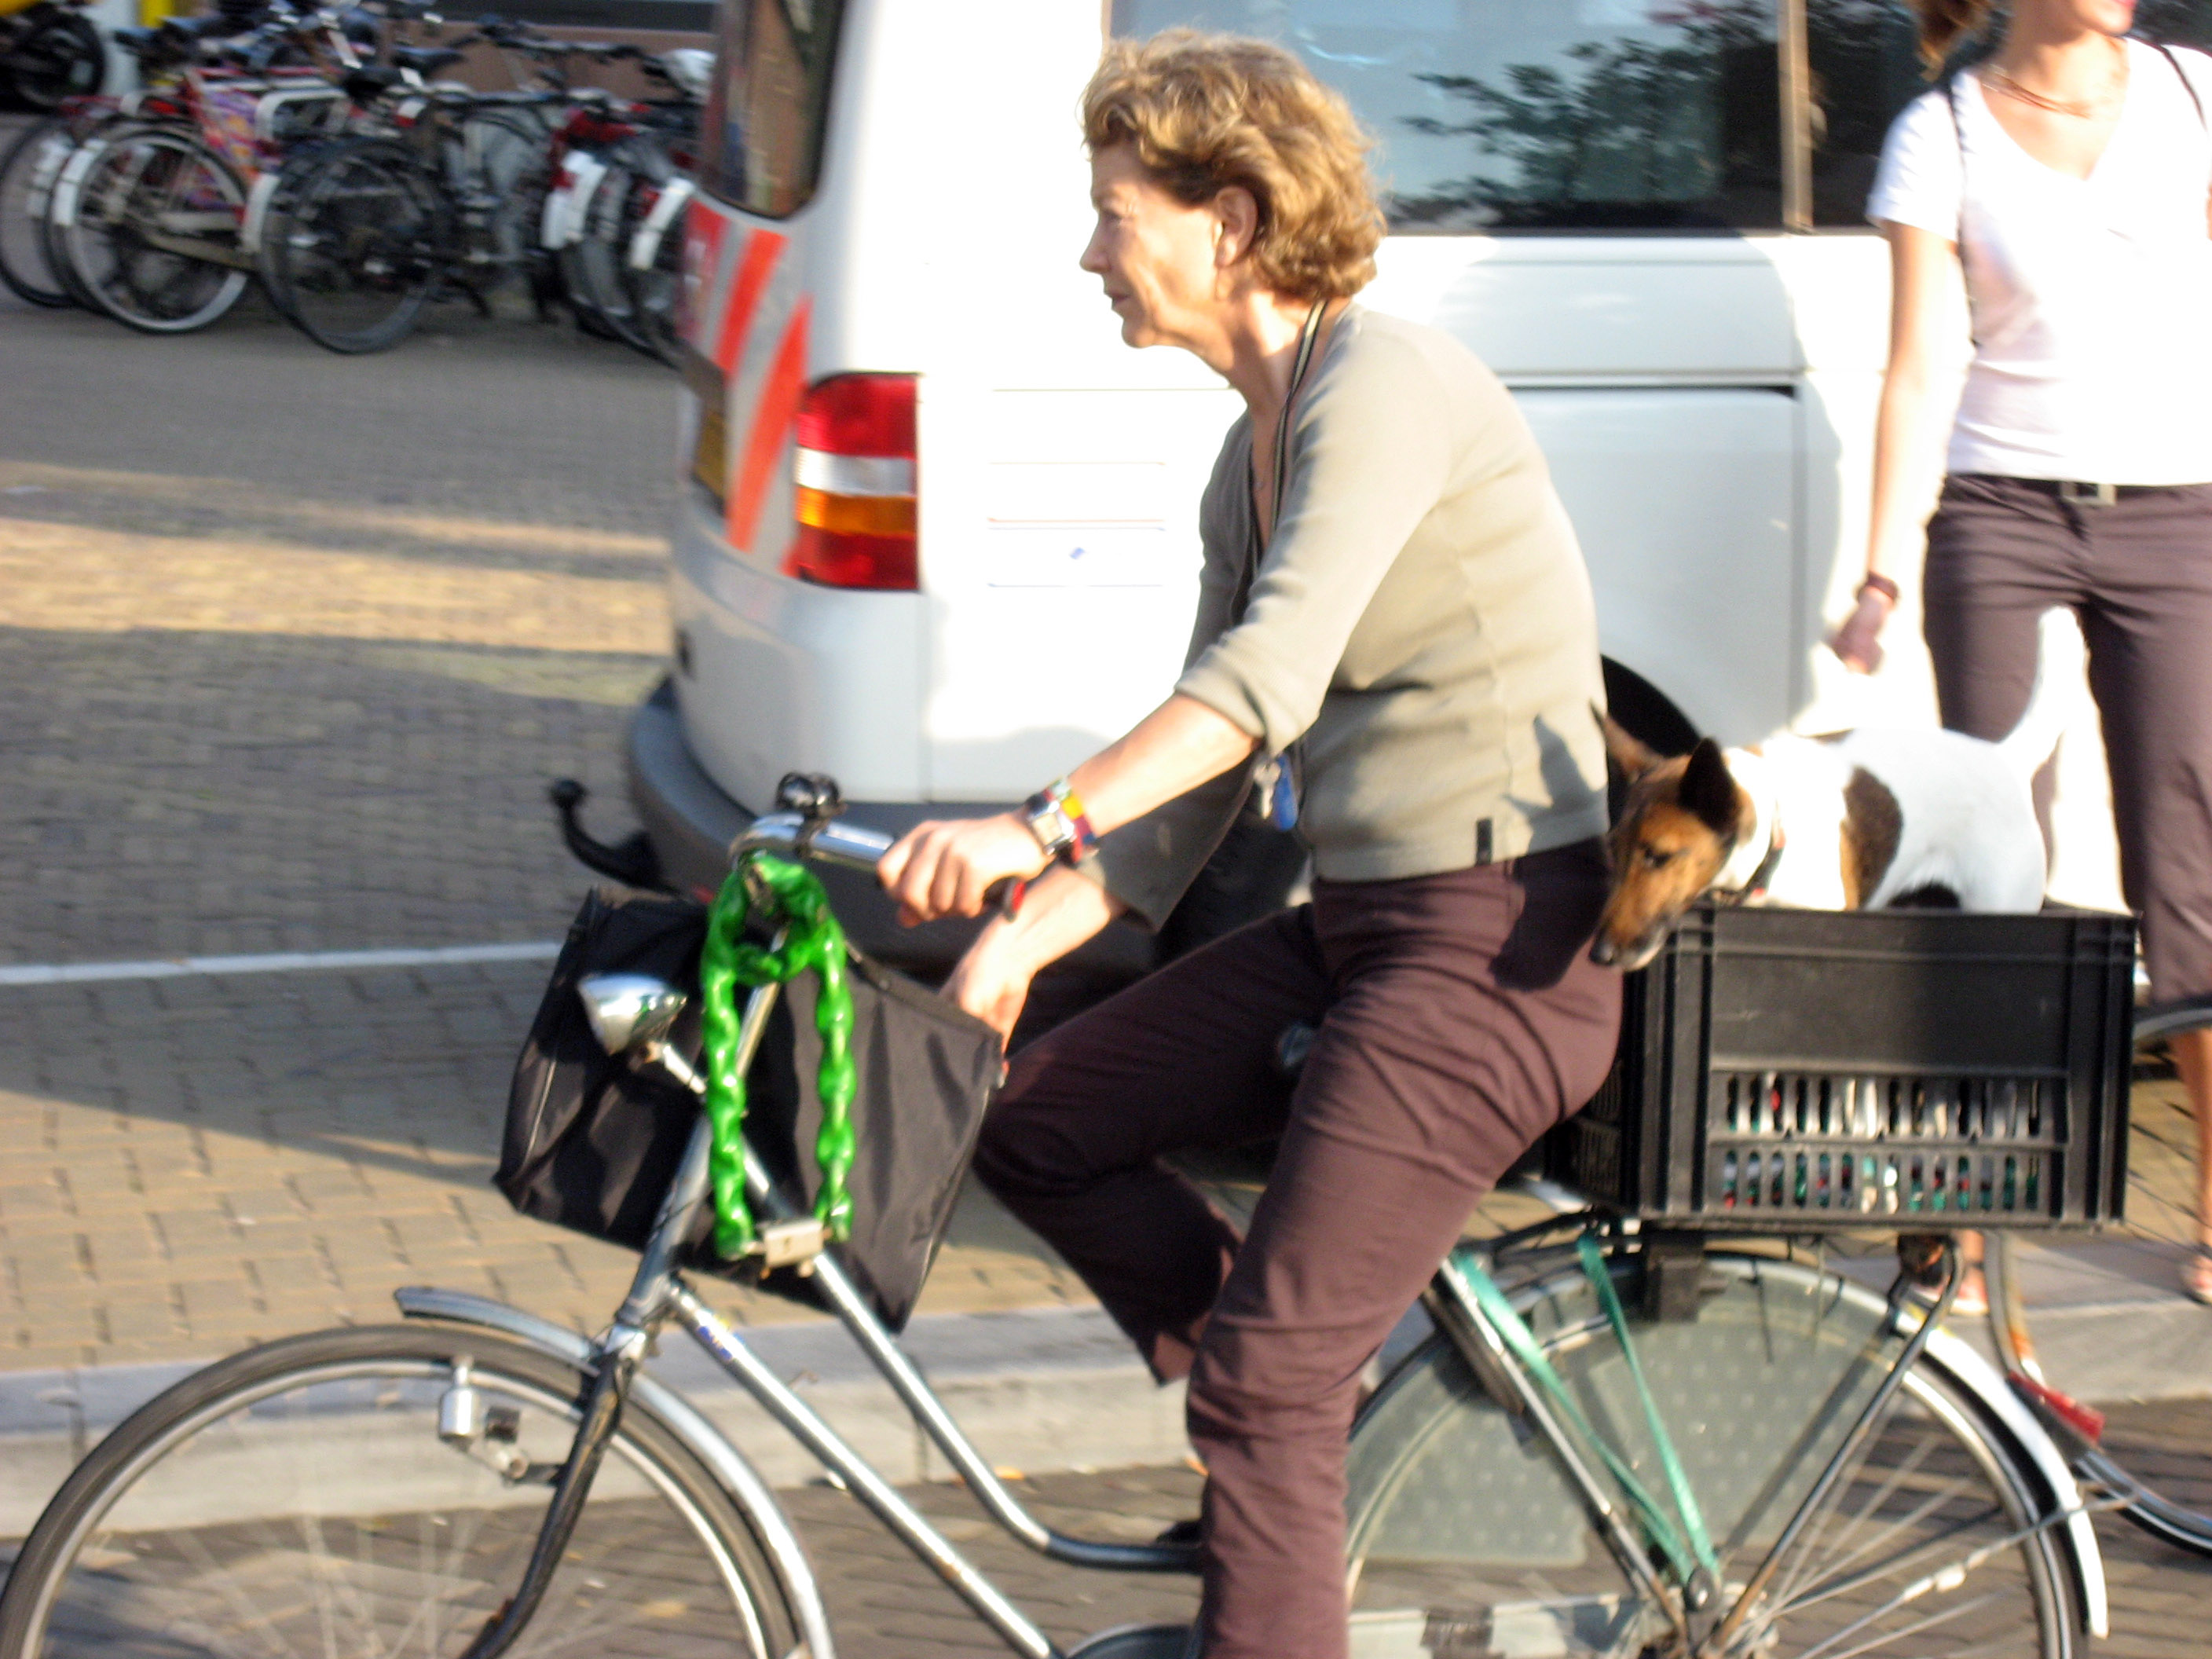 http://www.ski-epic.com/amsterdam_bicycles/pn8b_amsterdam_bicycle_dog.jpg